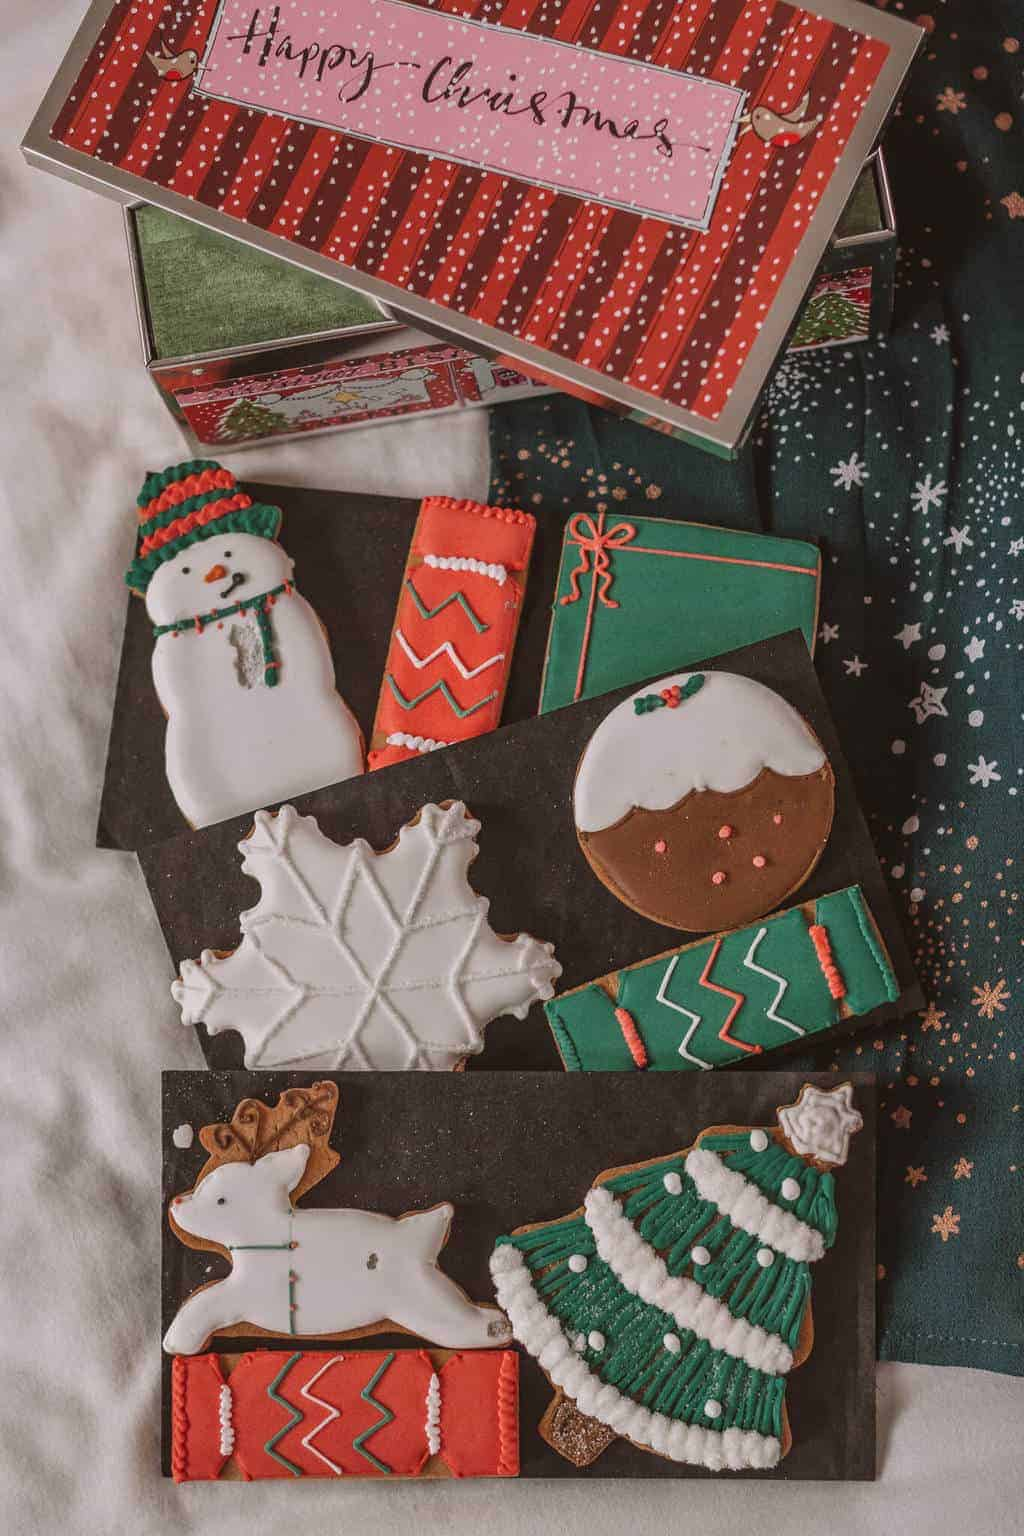 Biscuiteers - Christmas Gift Guide 2018: Brilliant Christmas Gift Ideas For Her #whatshotblog